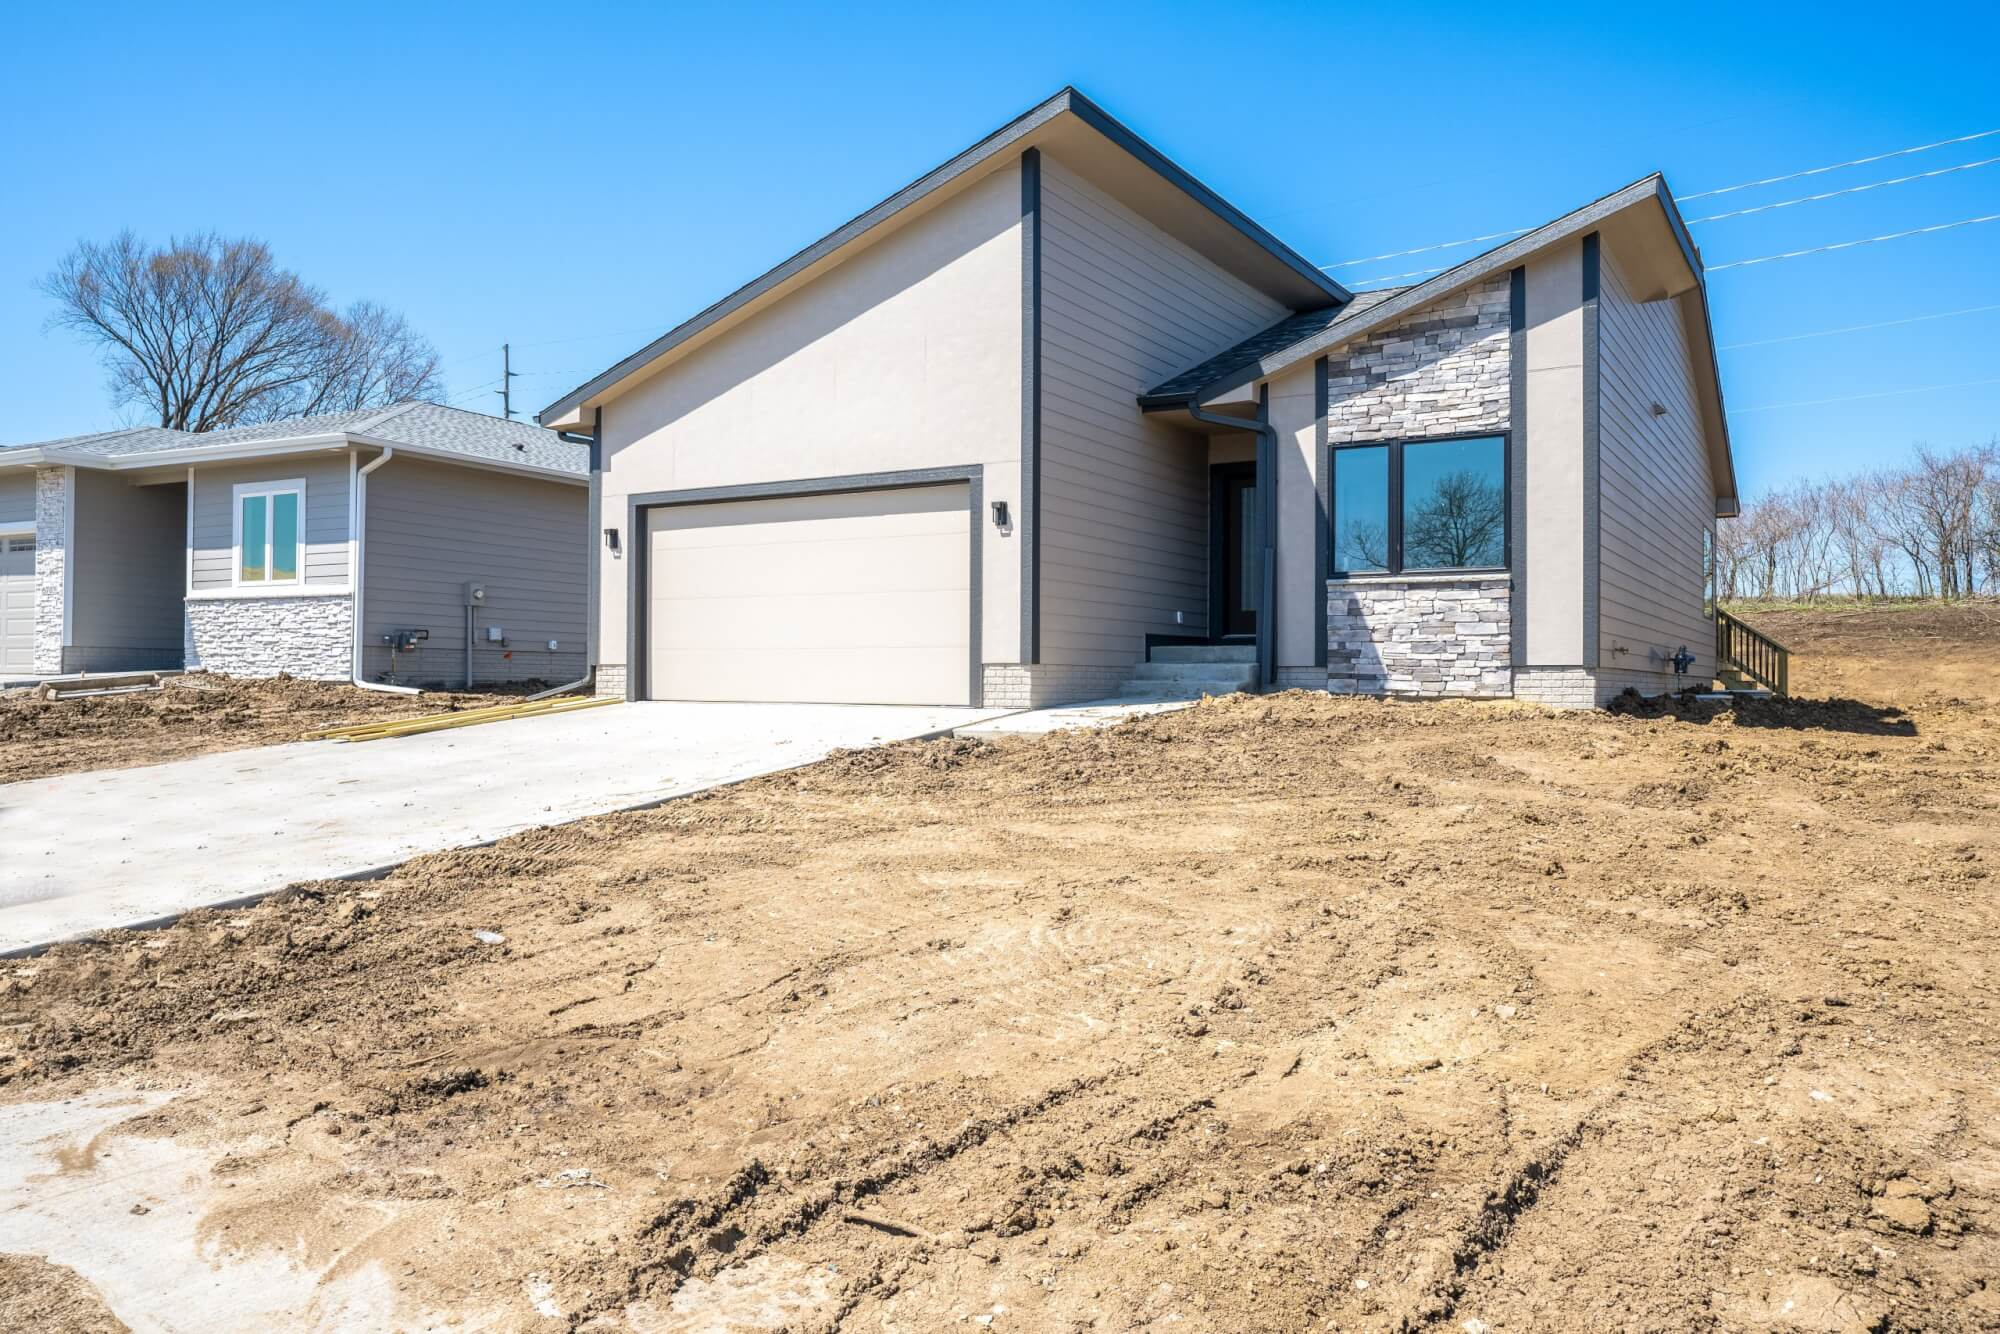 A picture of a geometric home built by Kruse Development in Central Iowa.